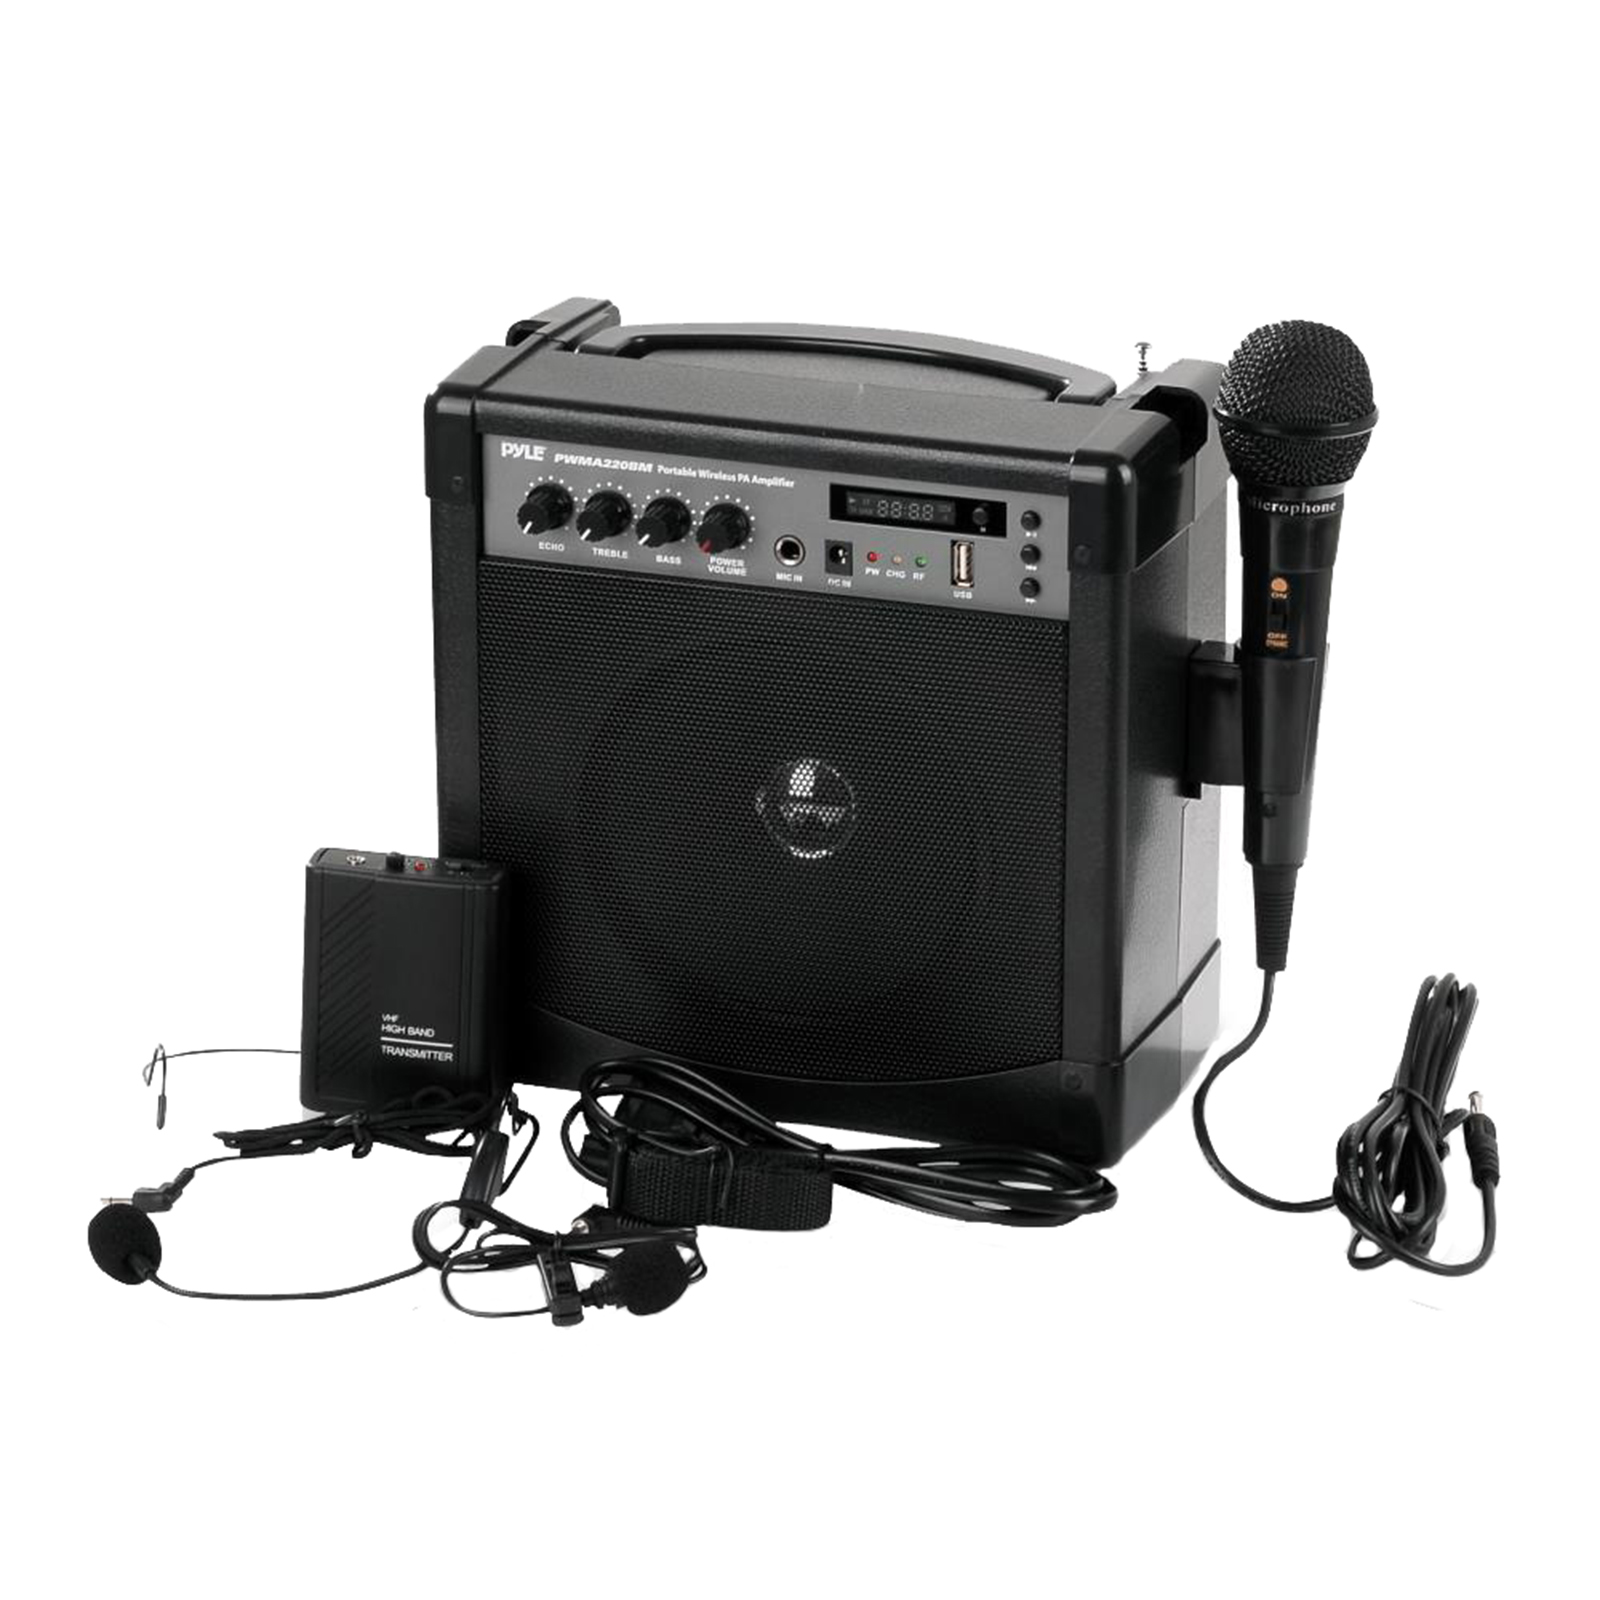 Portable Karaoke PA Speaker Amplifier & Microphone System, BT Streaming, Built-in Battery (Includes Belt Pack Transmitter, Headset, Lavalier & Wired Handheld Microphone)